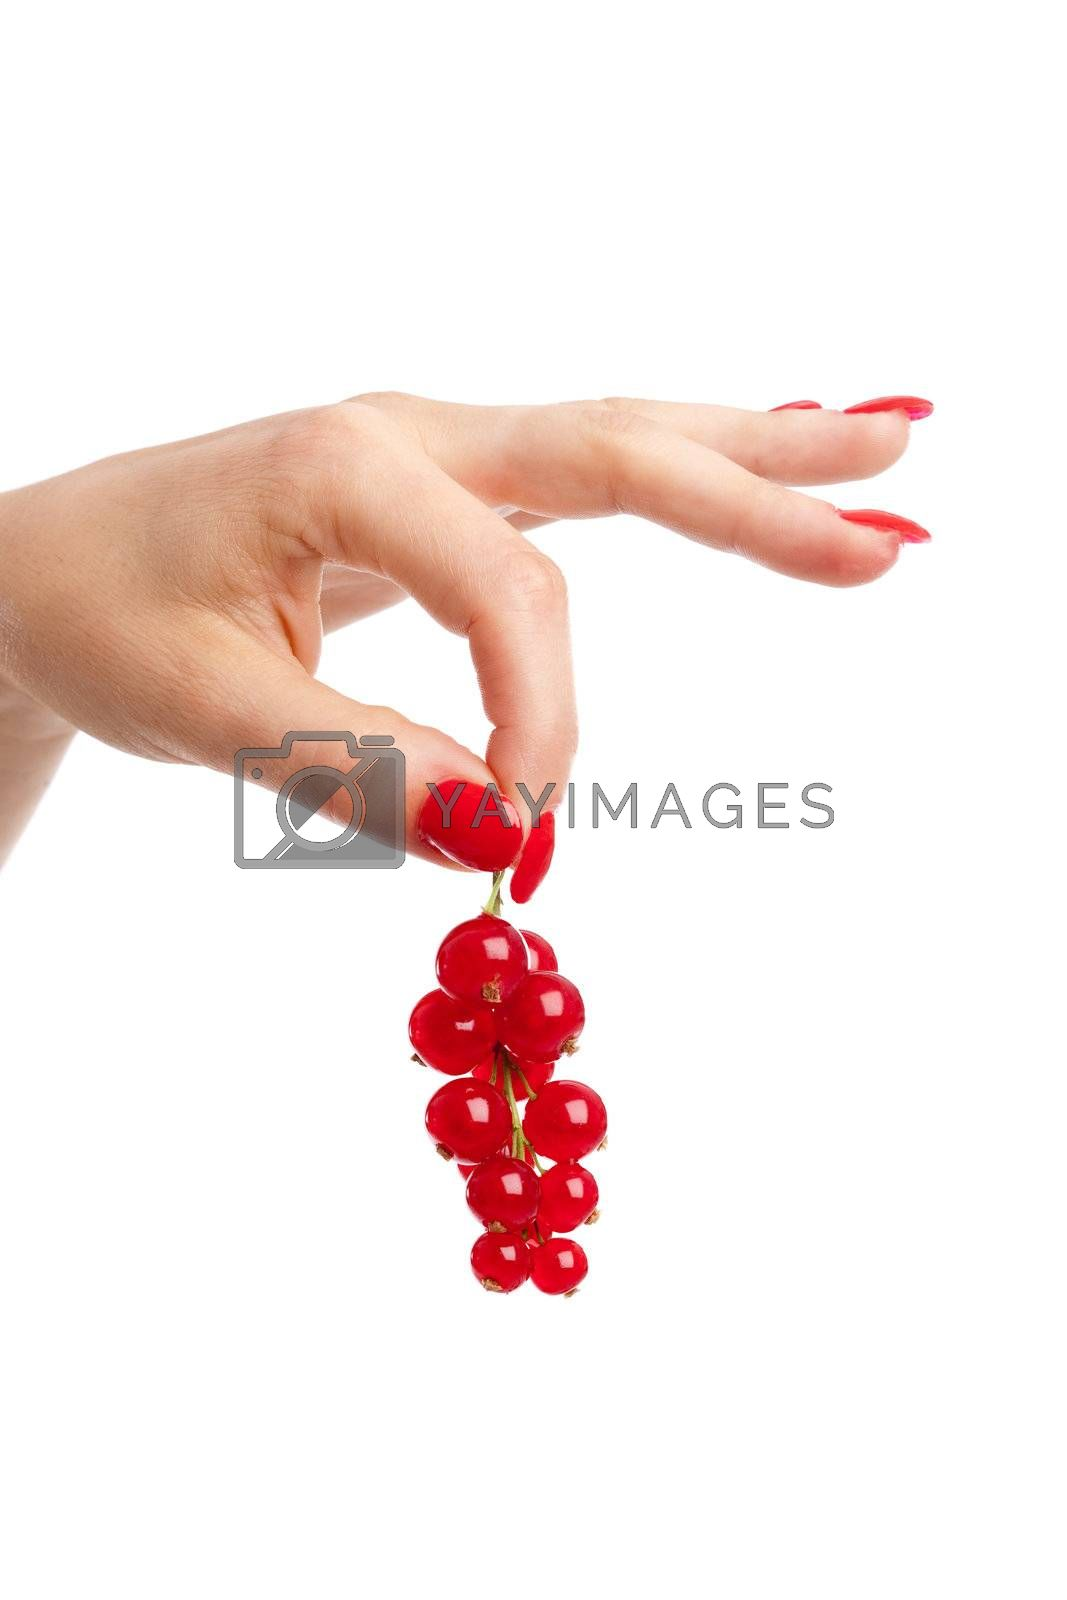 Royalty free image of Holding the currants by Fotosmurf